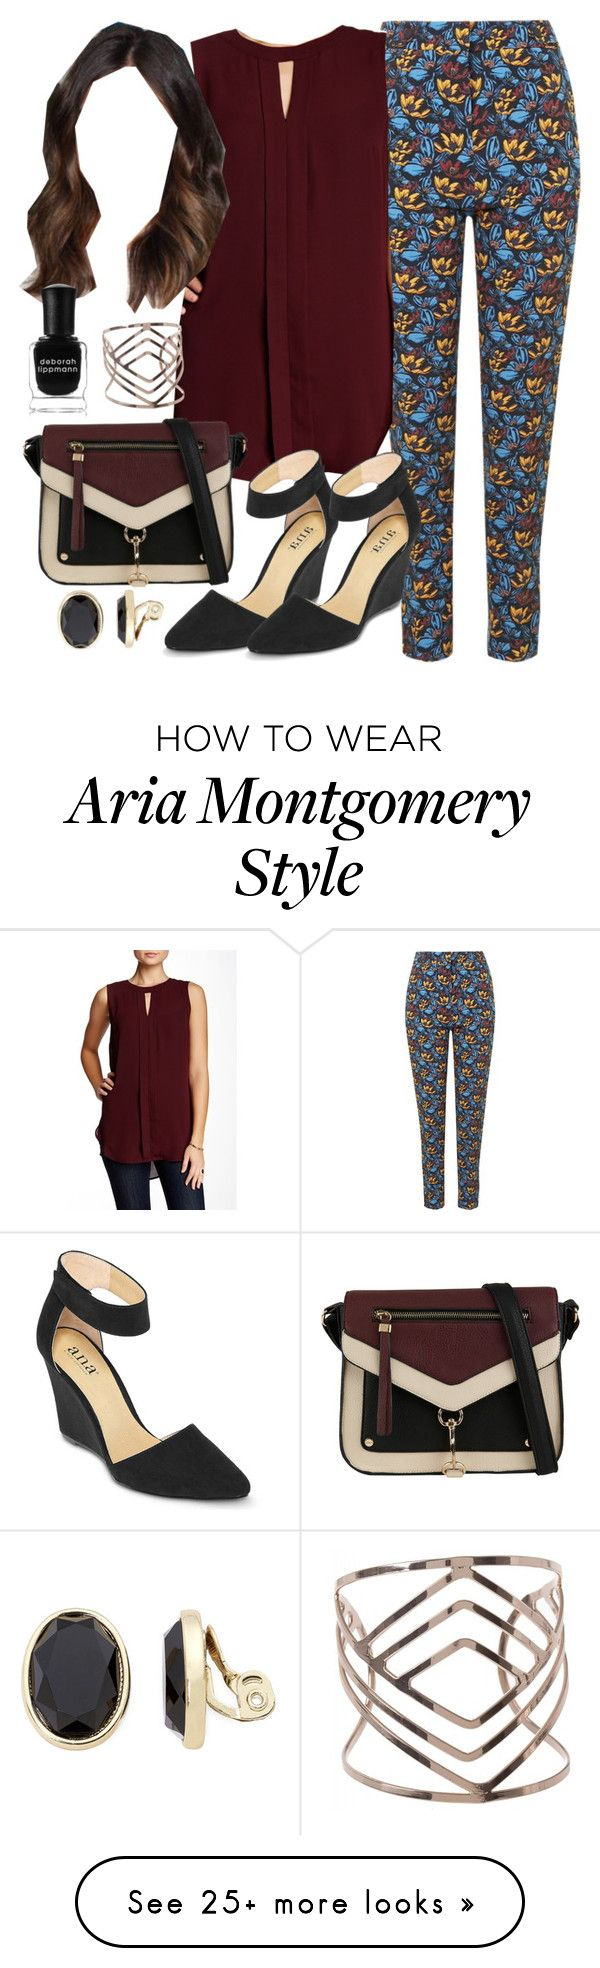 """Aria Montgomery inspired outfit"" by liarsstyle on Polyvore featuring Topshop, Vince Camuto, A.N.A, Call it SPRING, Liz Claiborne, Deborah Lippmann, Work and Semi"